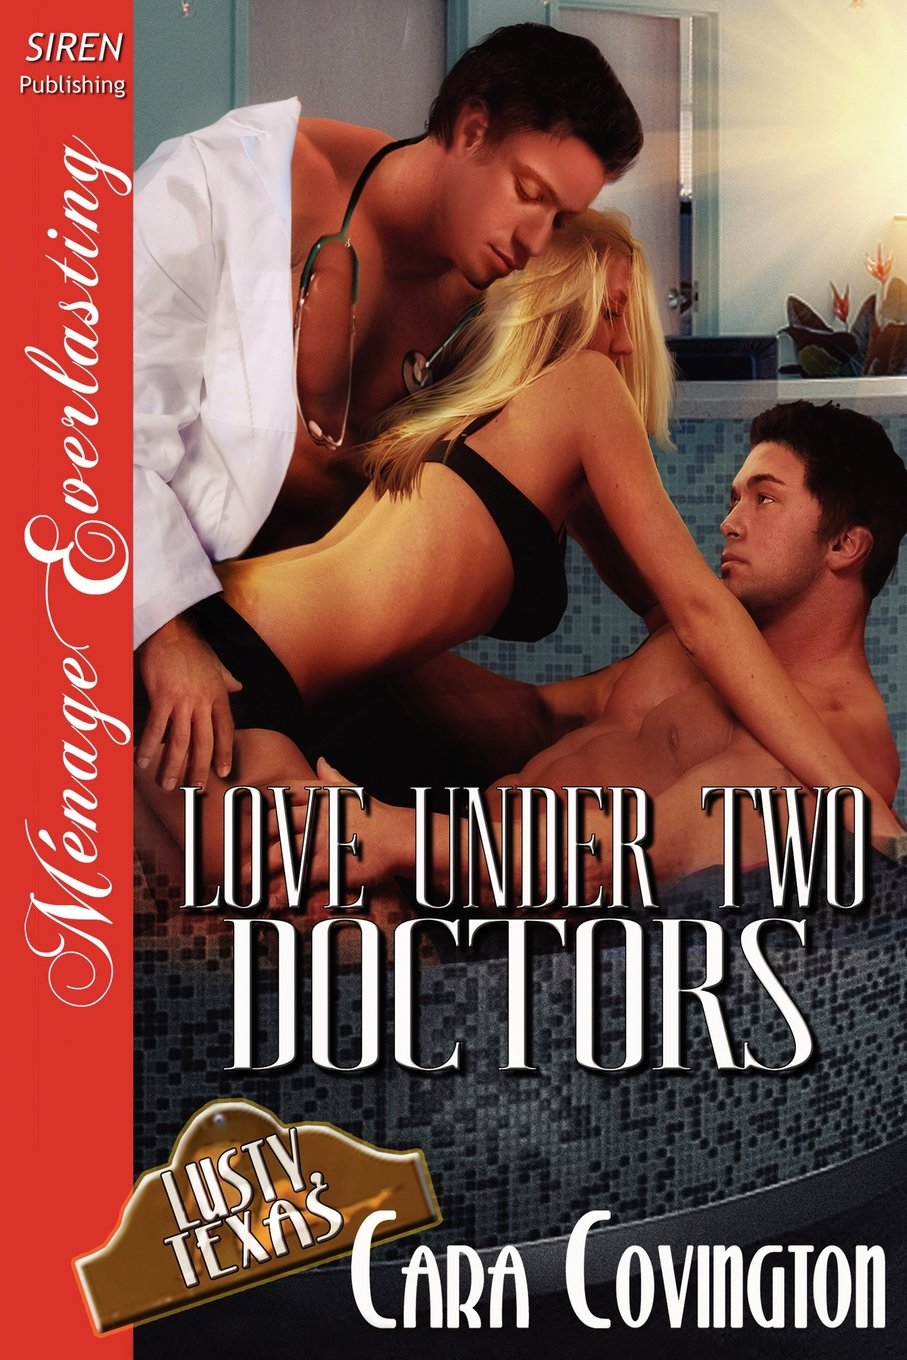 Download Love Under Two Doctors [Lusty, Texas 9] (Siren Publishing Menage Everlasting) PDF